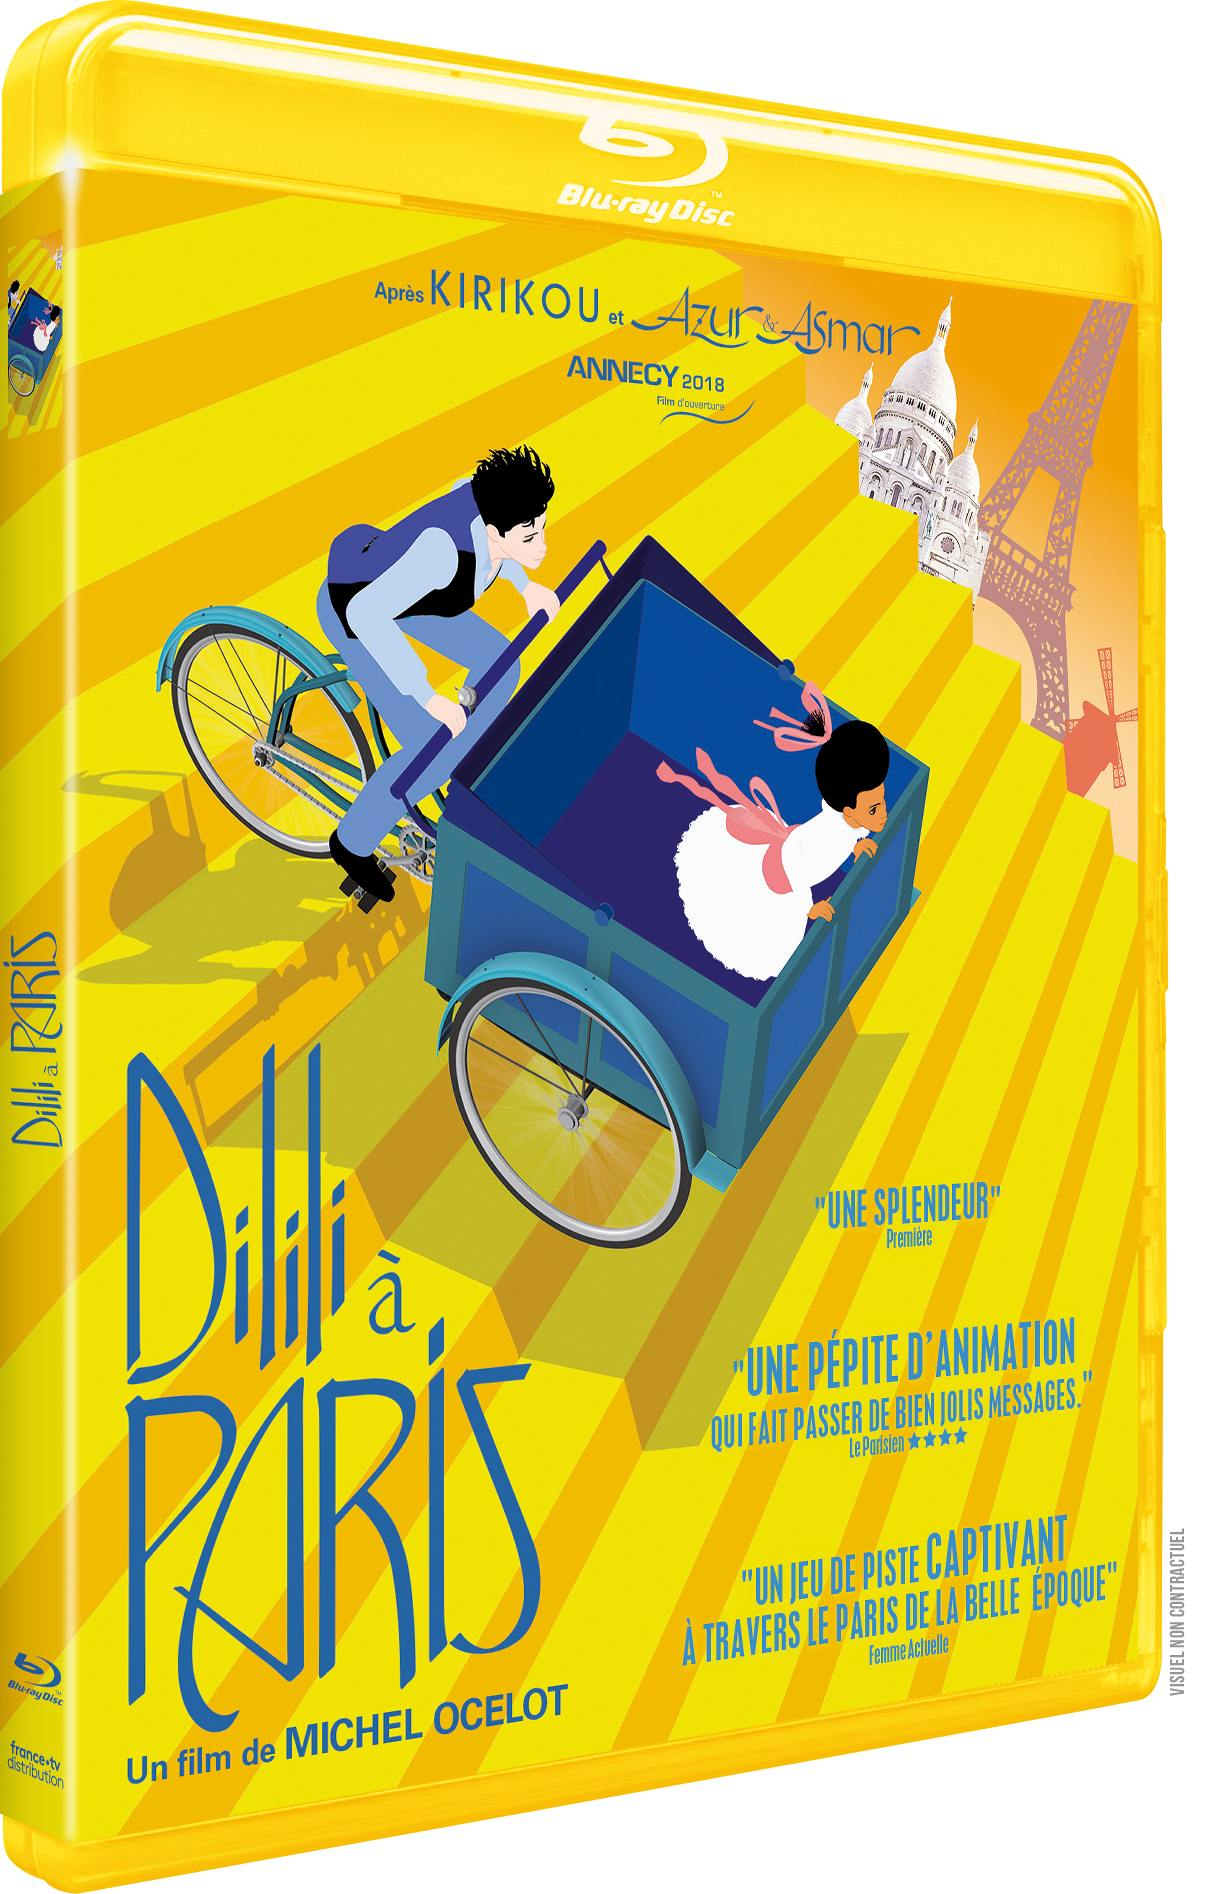 Dilili a paris - blu-ray